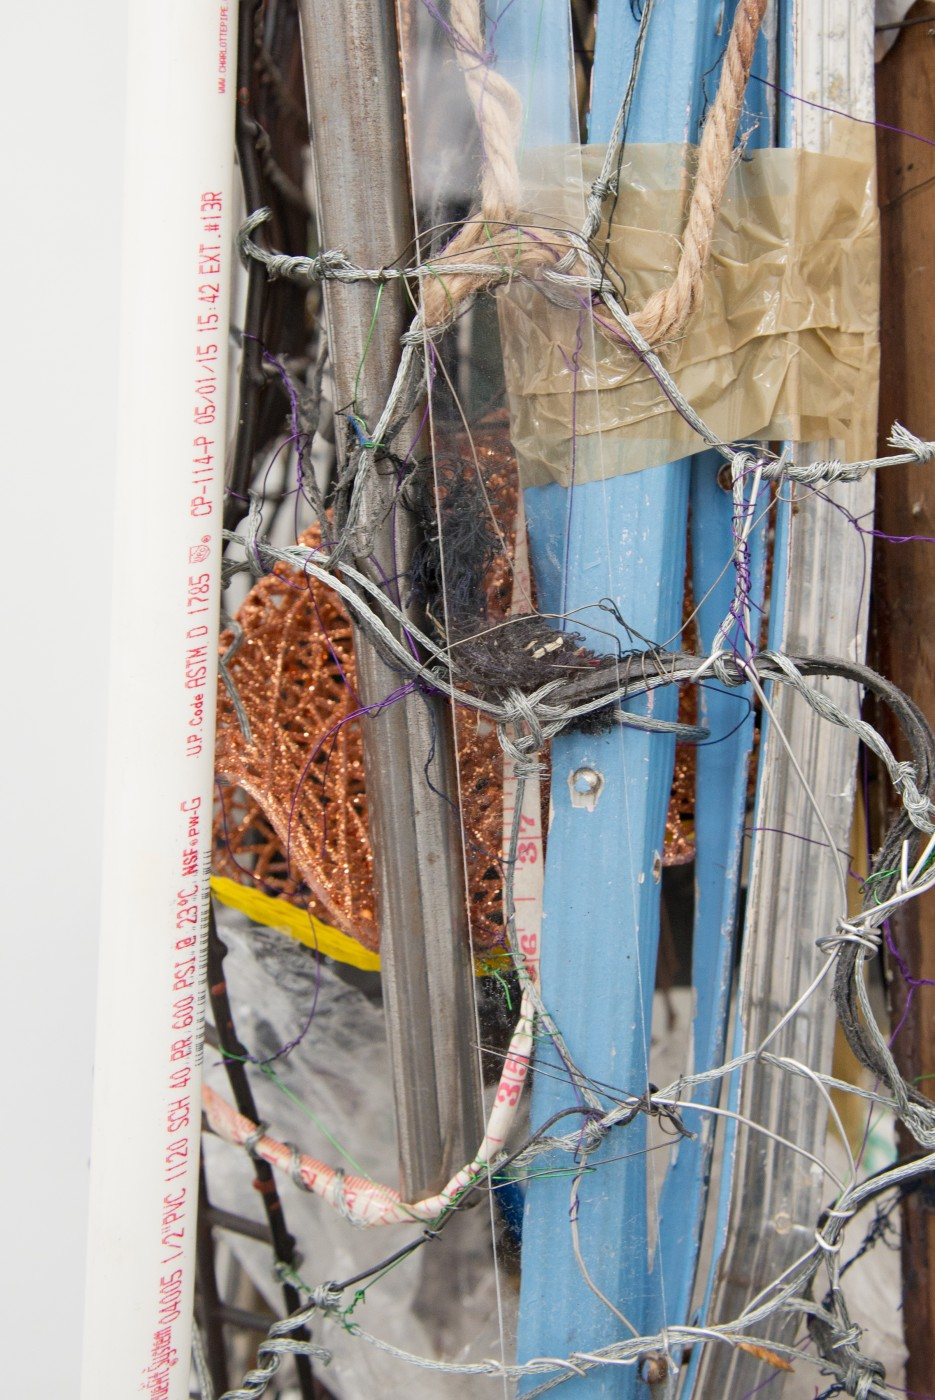 METROPOLITAN  Nocturnal Digest</I>, 2015 (detail) Mixed media 97 x 29 x 42 cm / 38.2 x 11.4 x 16.5 in